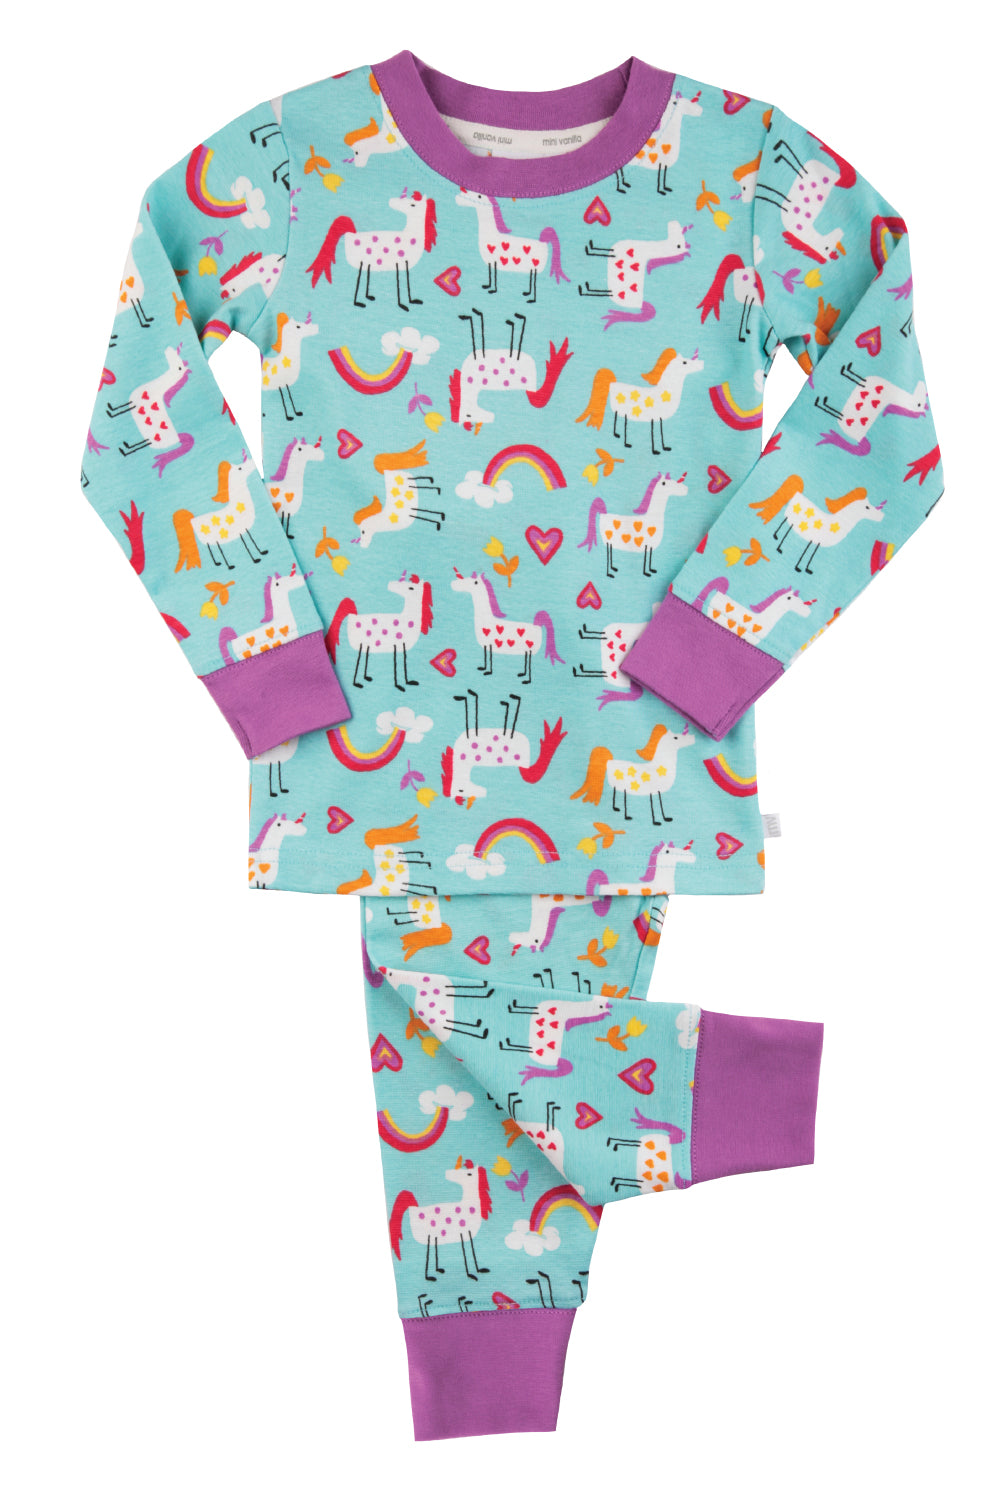 Unicorn print skinny fit Pyjama for Girls ages 1-10 years